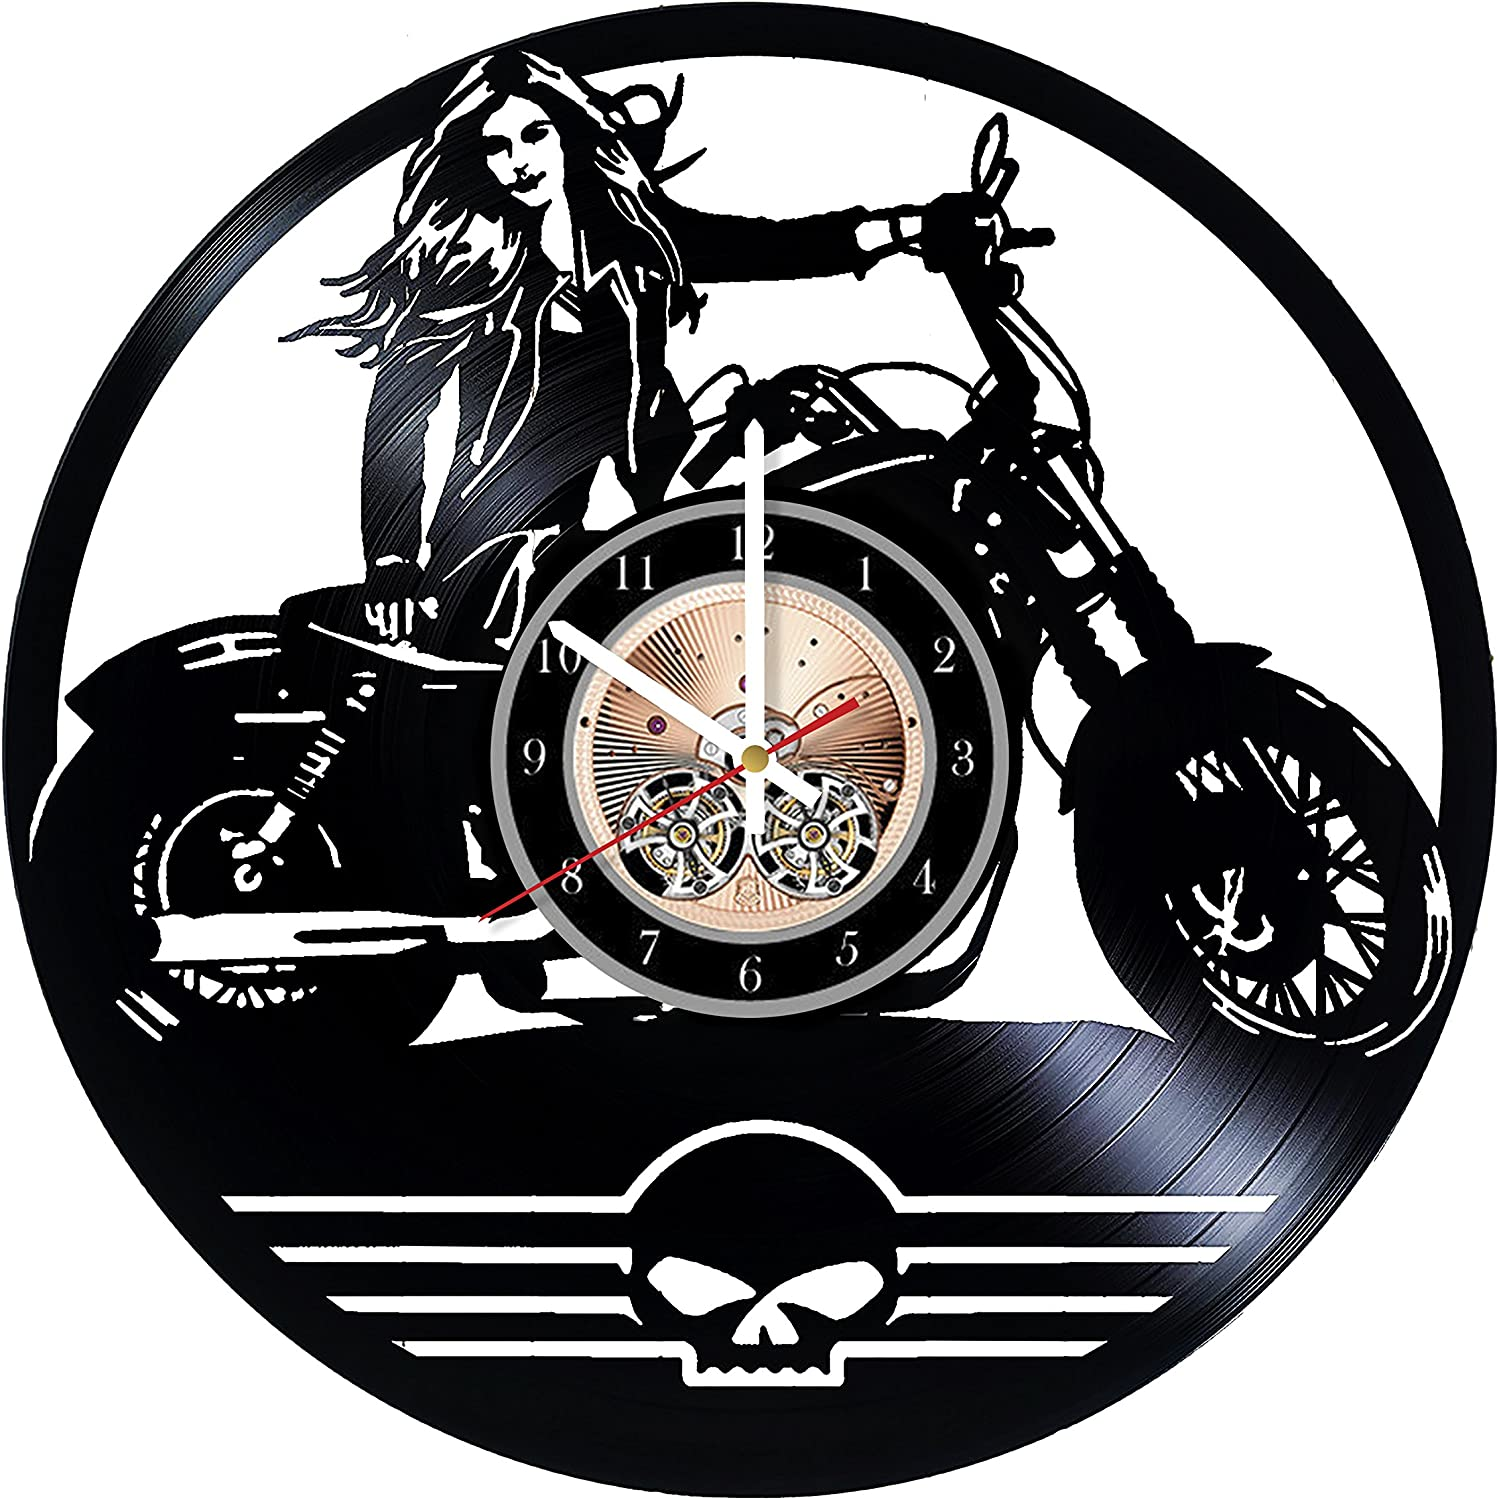 Amazon Com Motorcycle Club Design Art Vinyl Record Wall Clock 12 Really The Most Original Gift For Him And Her Perfect Element Of The Interior And Amazing Home Decor Idea Home